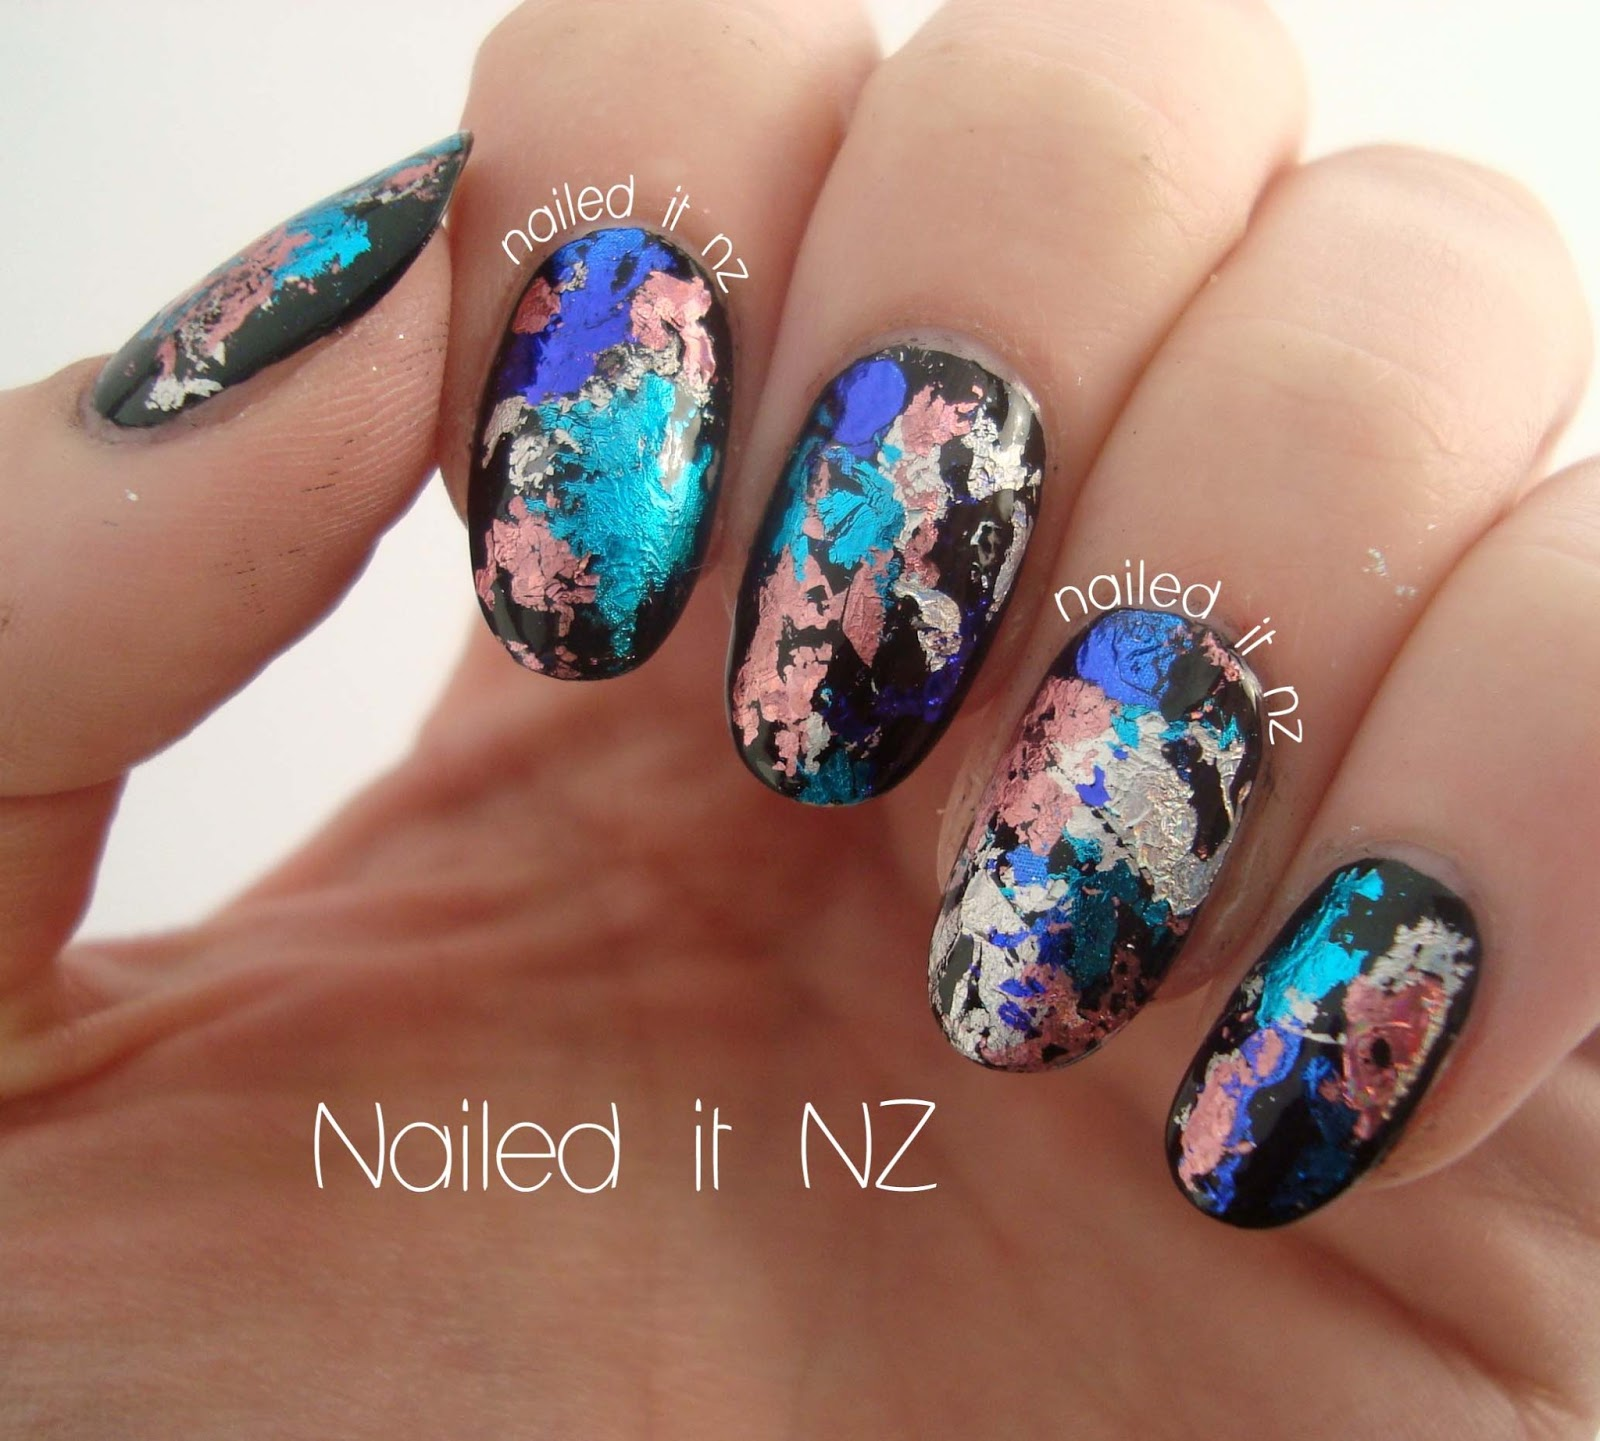 Nail foils review - such an cool effect!